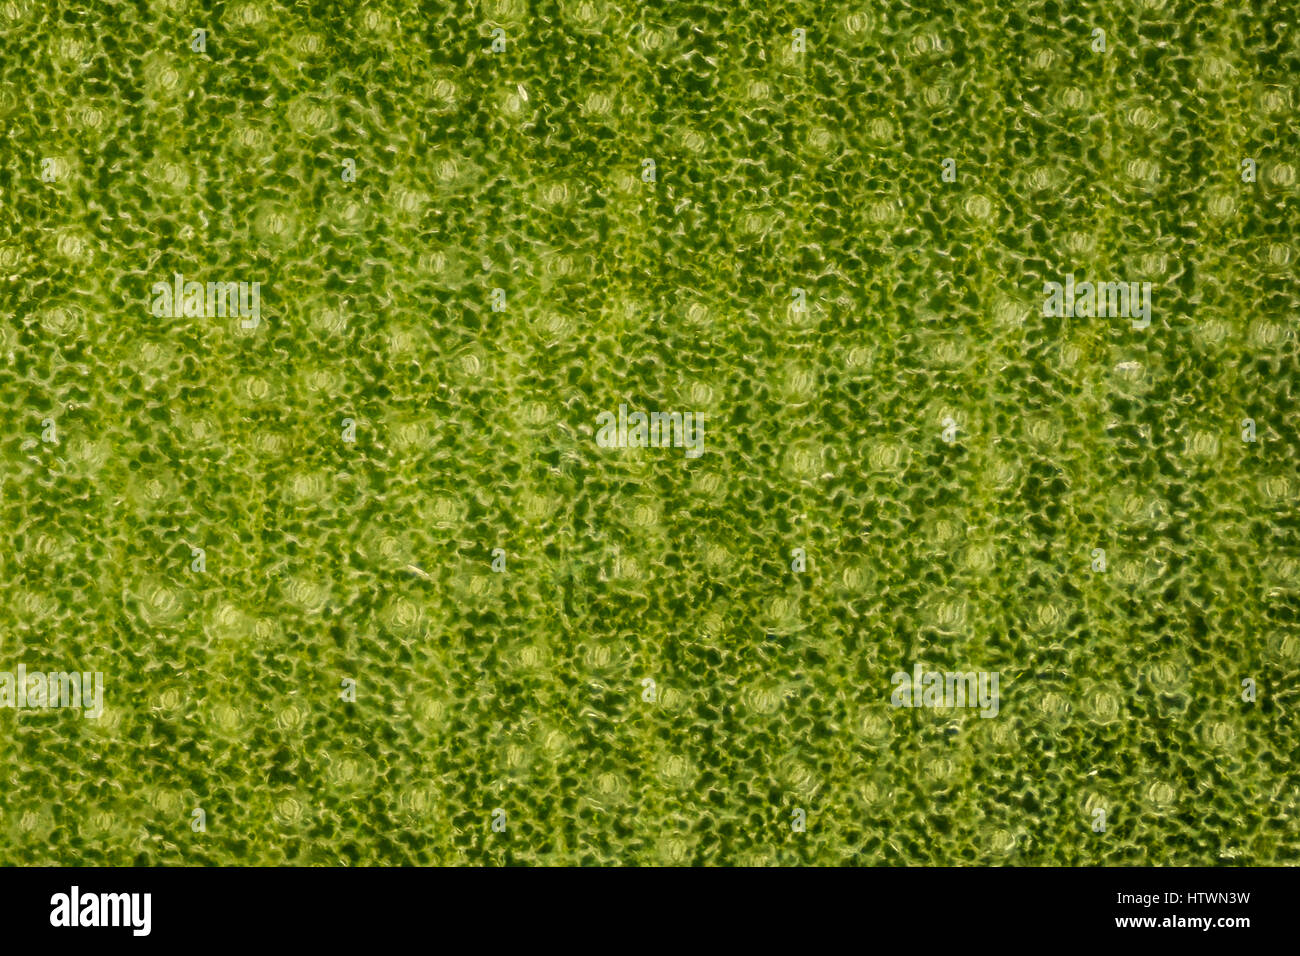 Extrem magnification - Stomatas in a green leaf - Stock Image